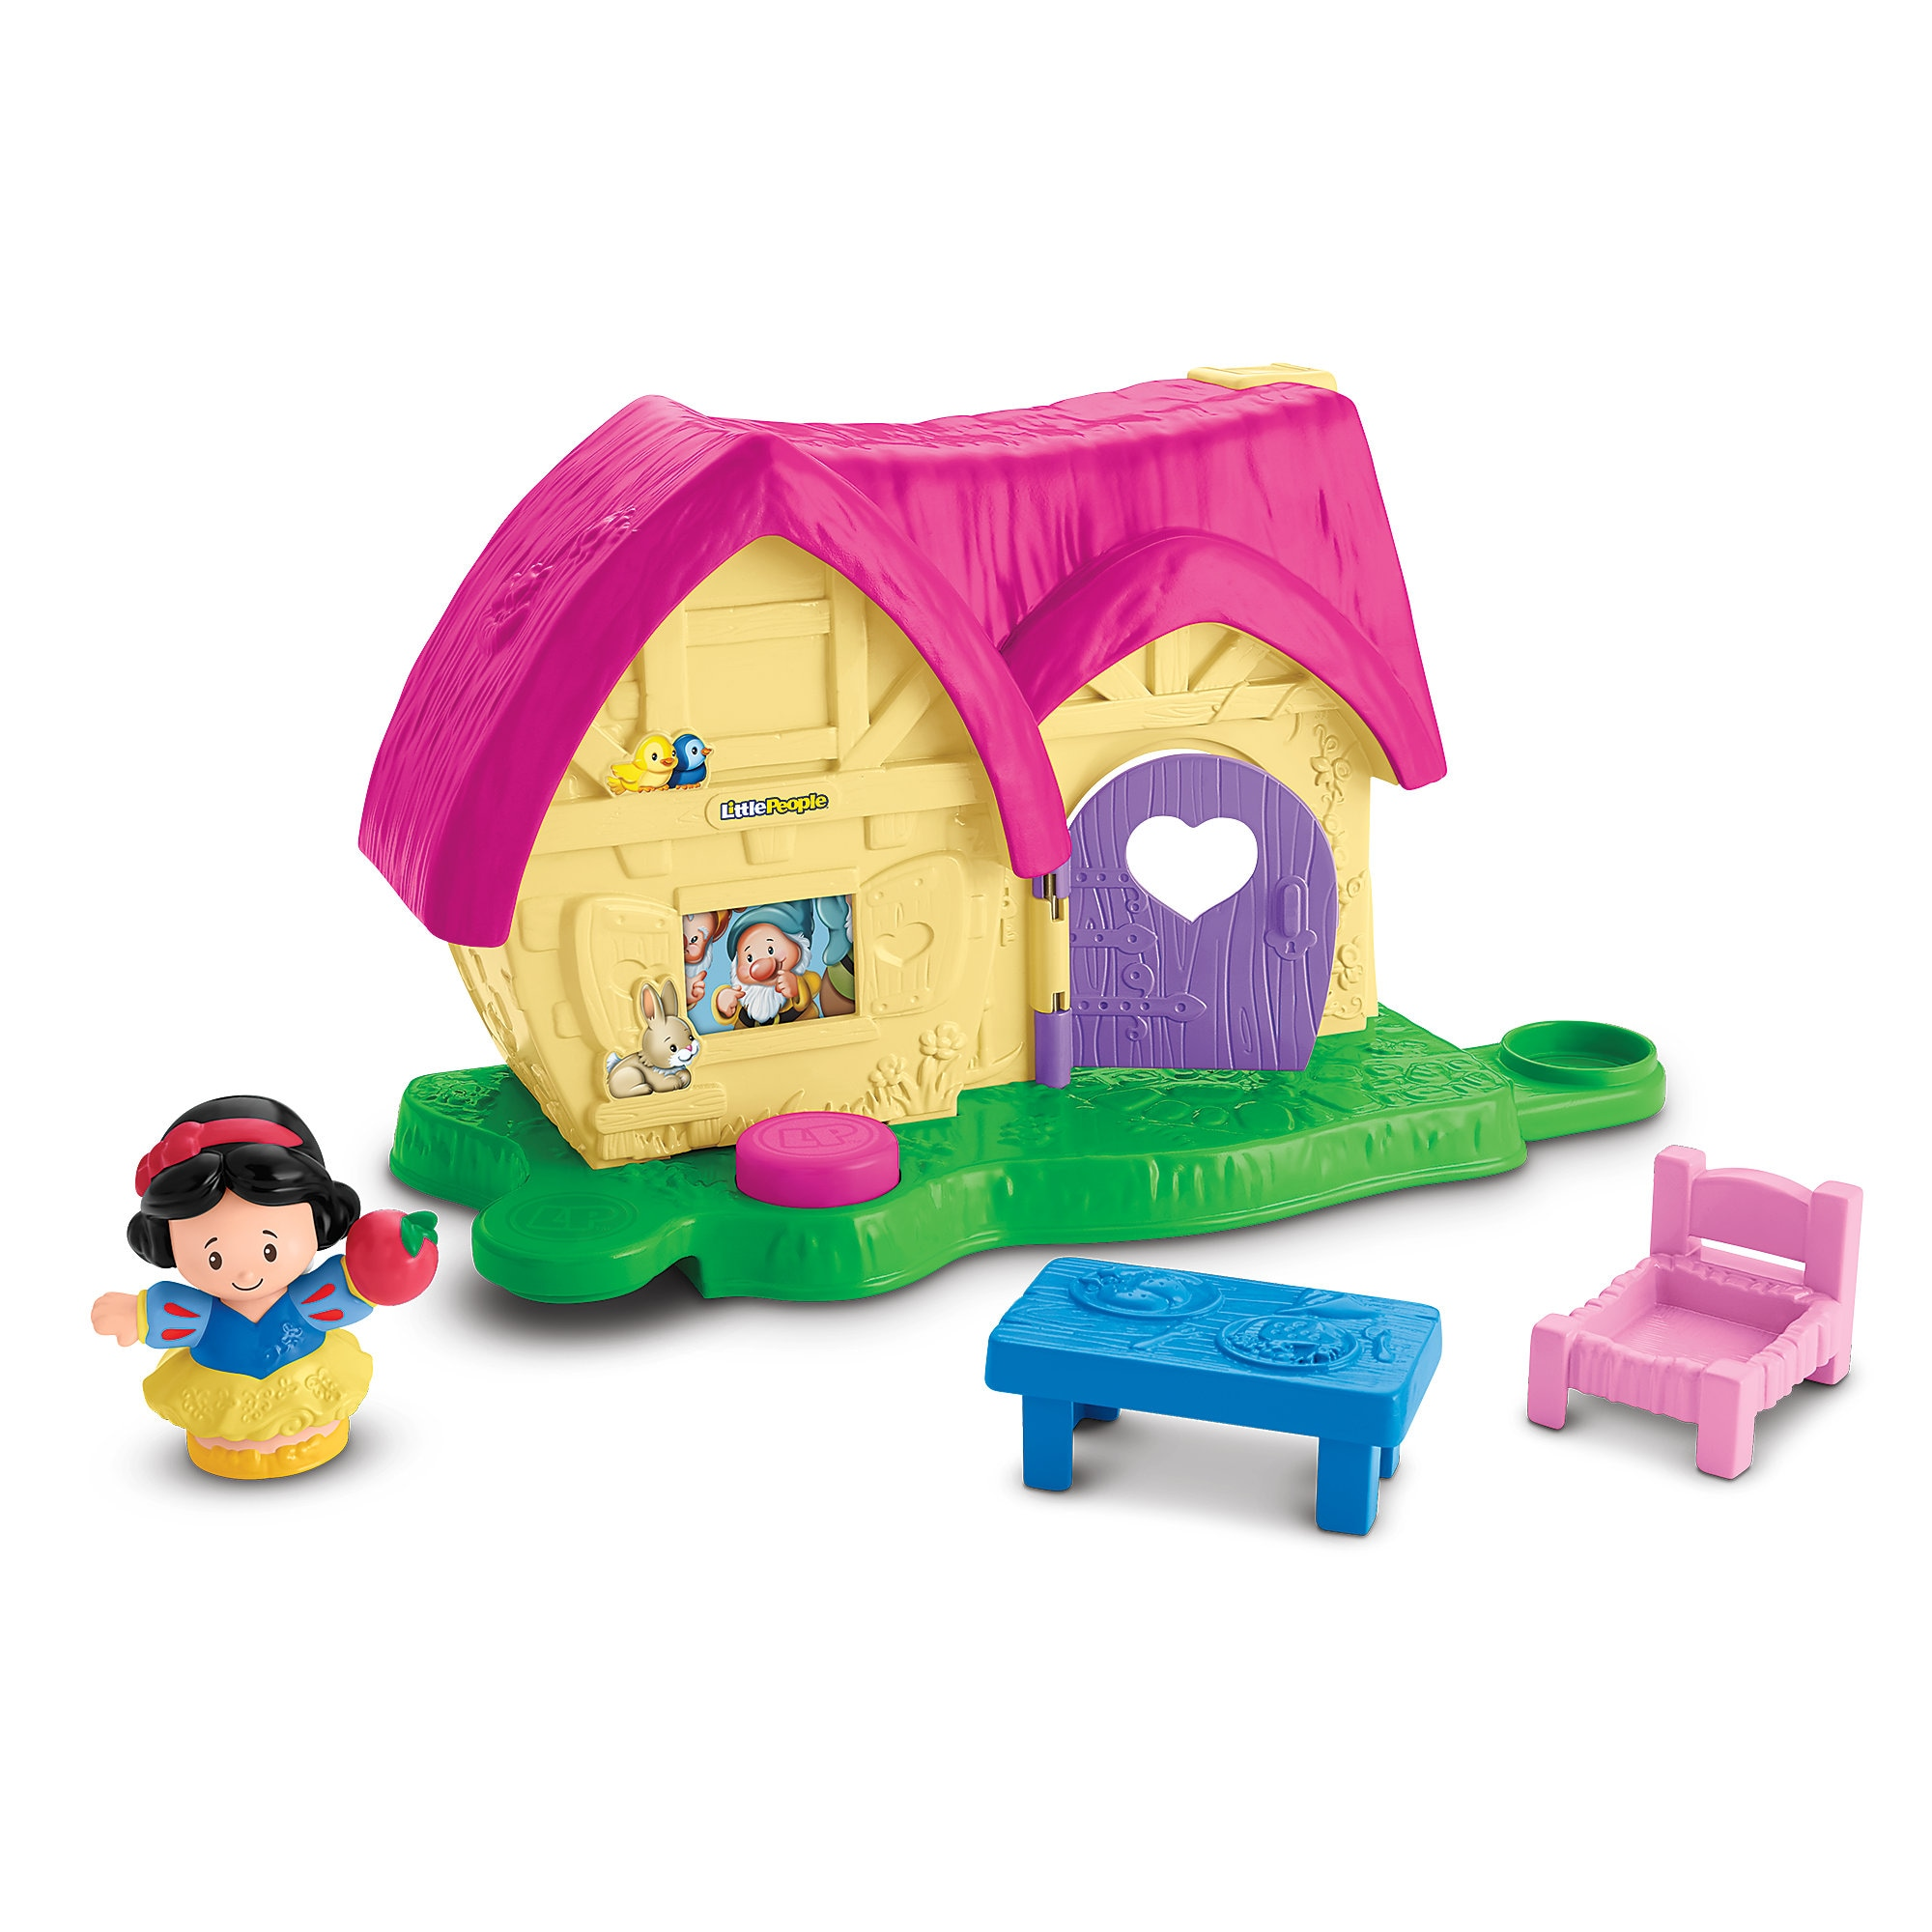 Snow White Cottage Little People Playset